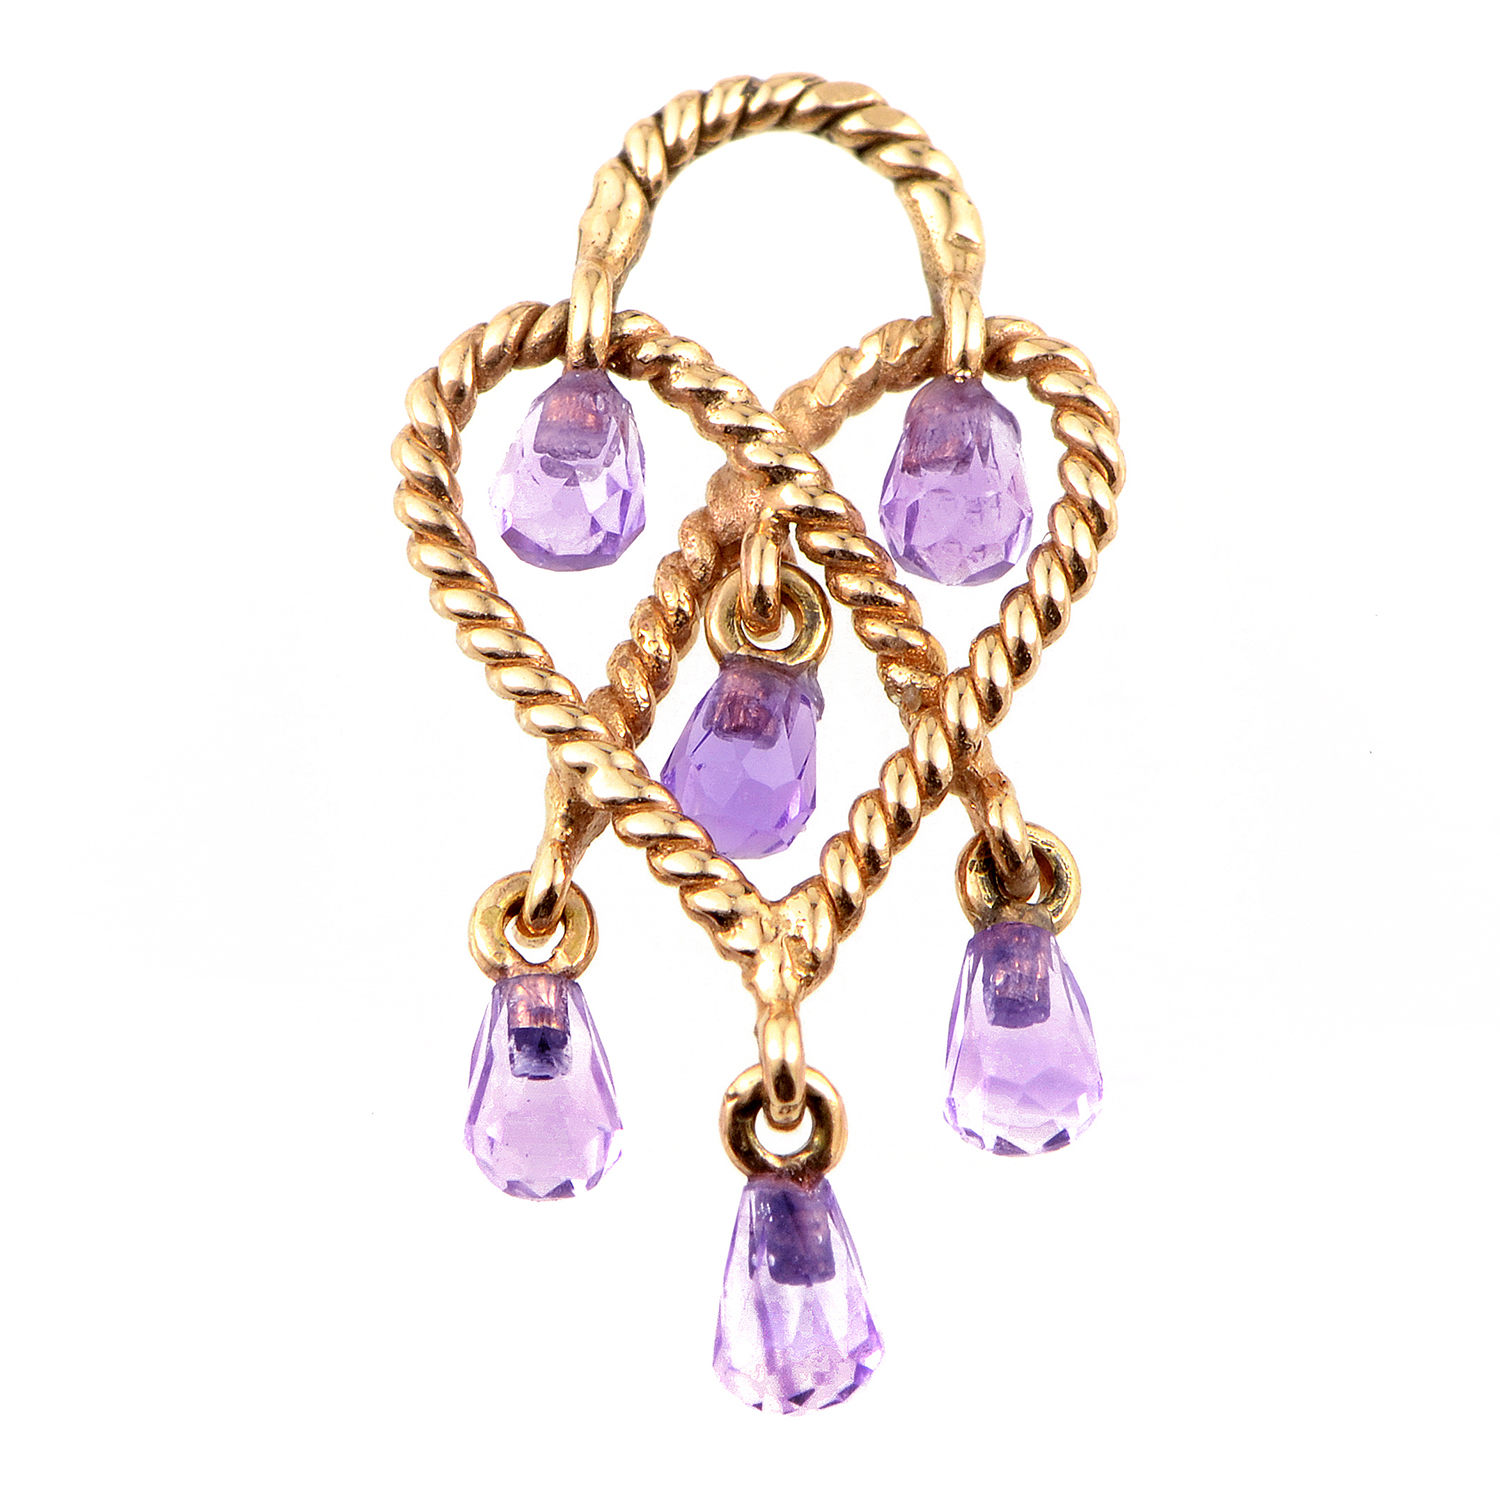 In Love Heart 18K Rose Gold Amethyst Briolette Pendant PPC9201